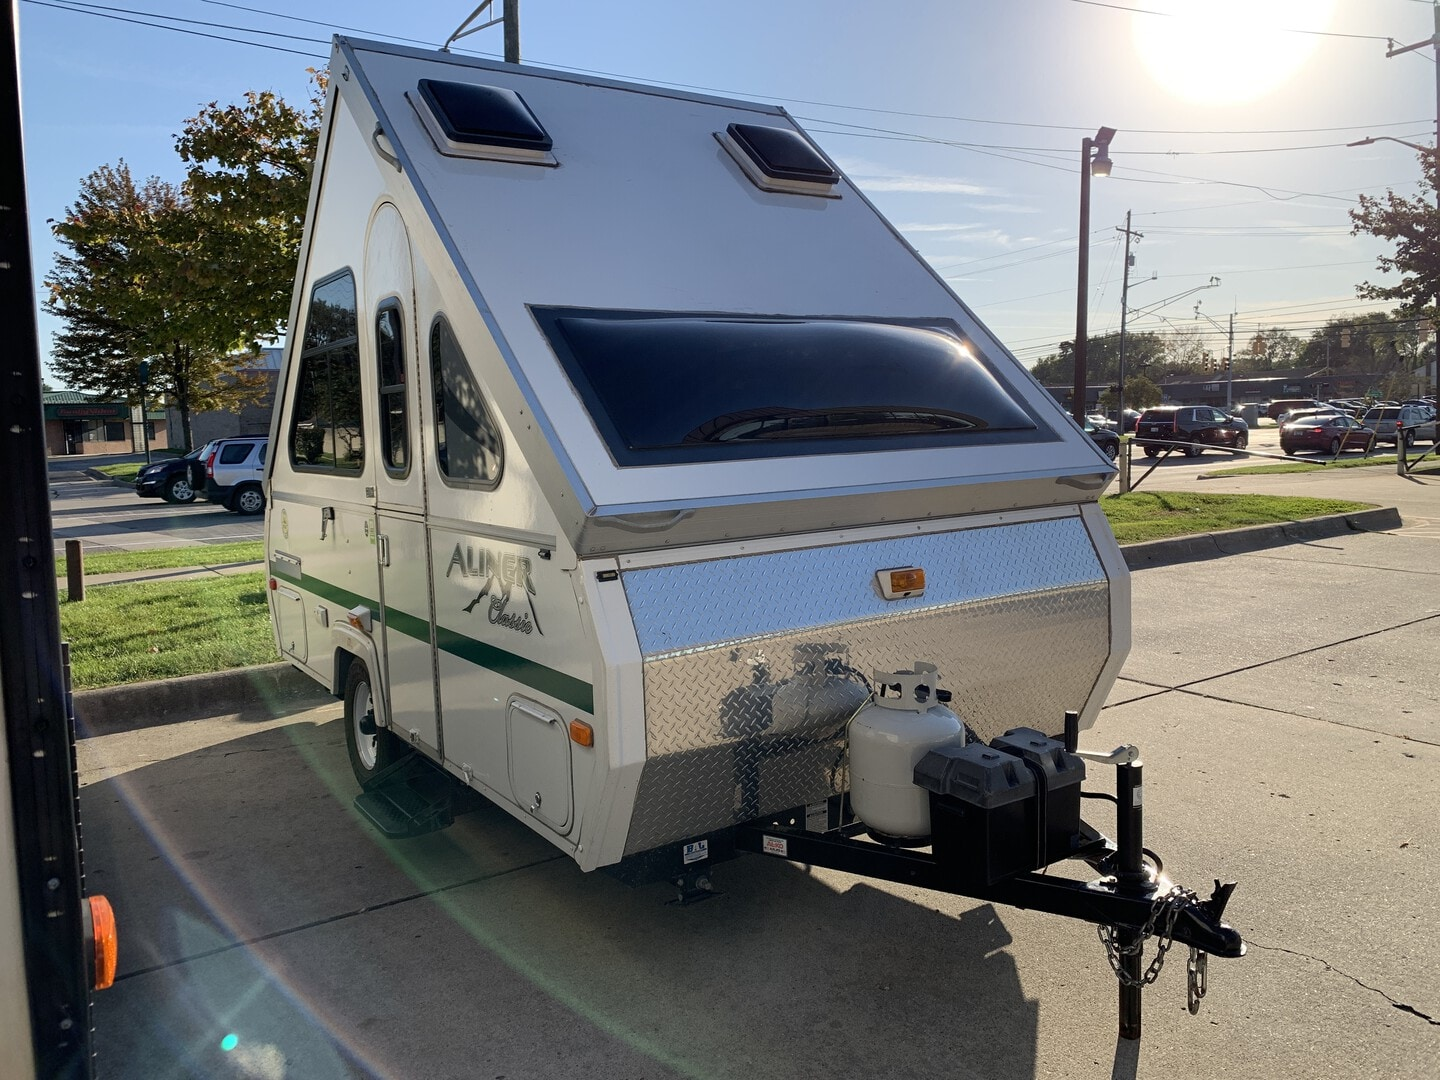 Used, 2011, Aliner, Classic, Pop-Up Campers